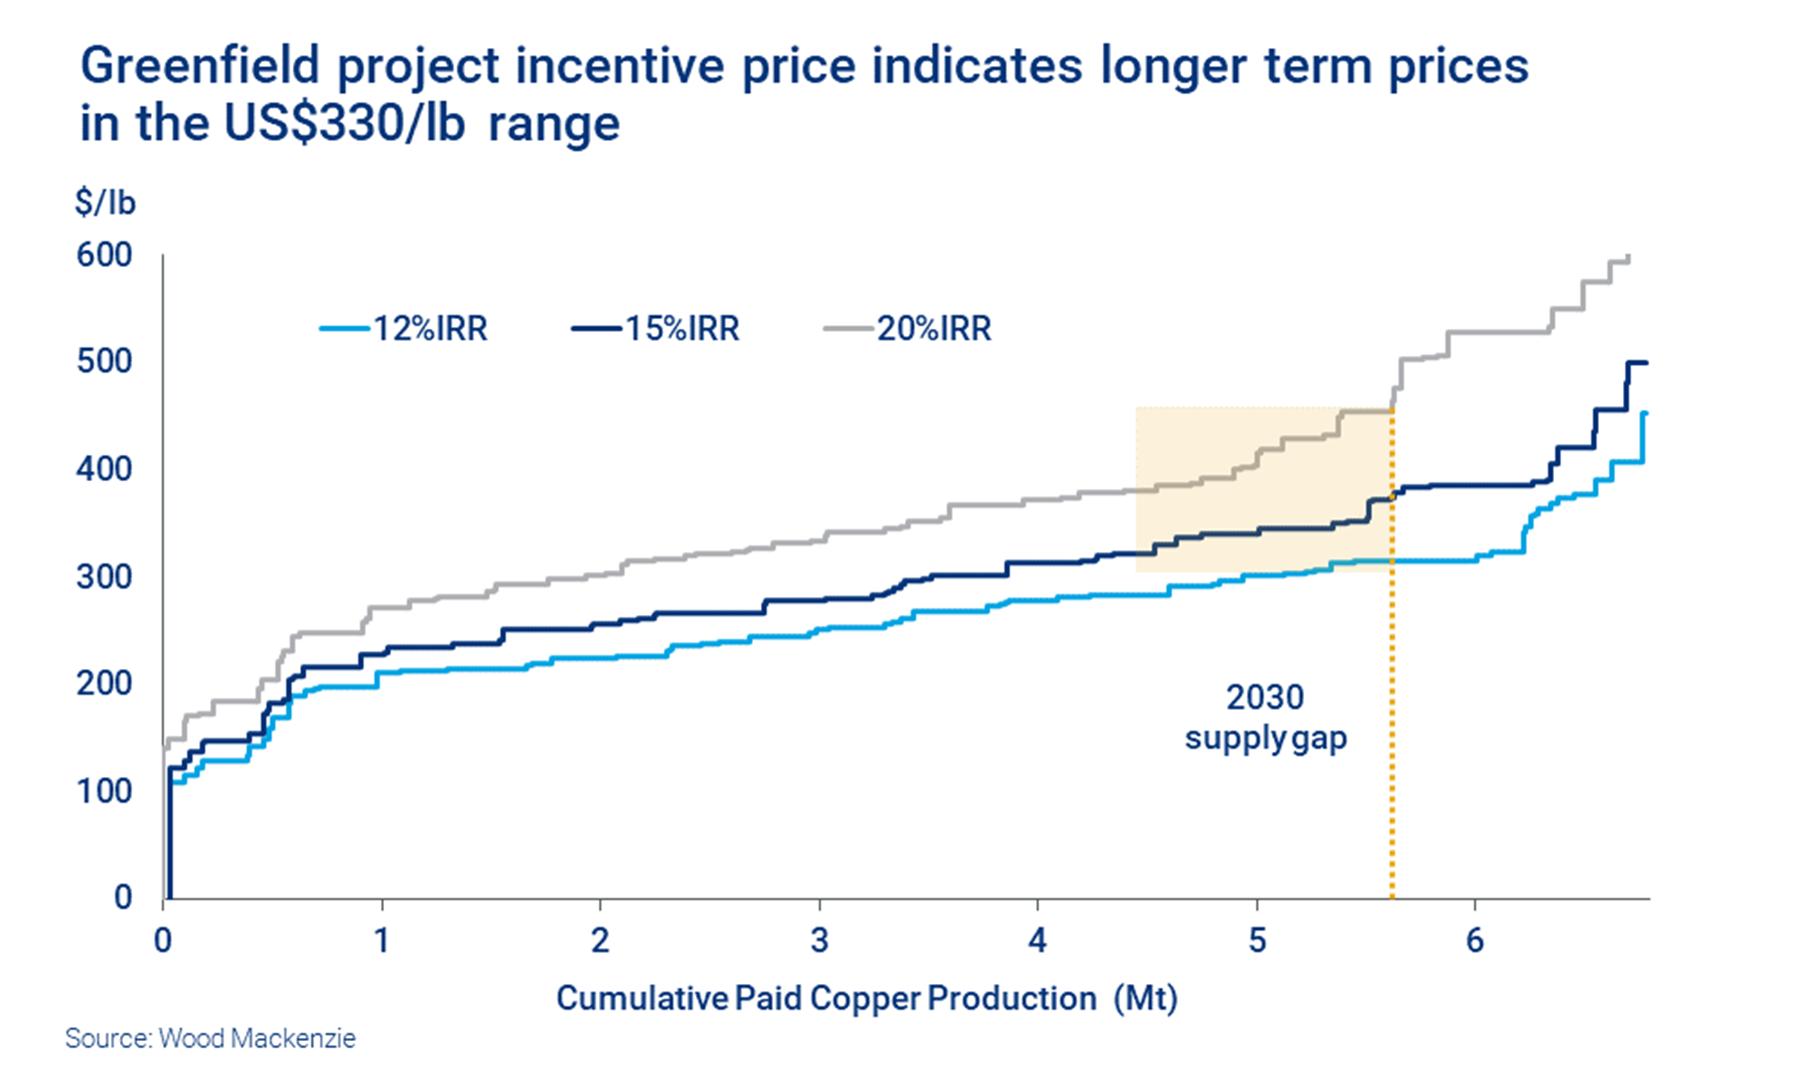 Greenfield copper project incentive price indicates longer term prices in the US$330/lb. range